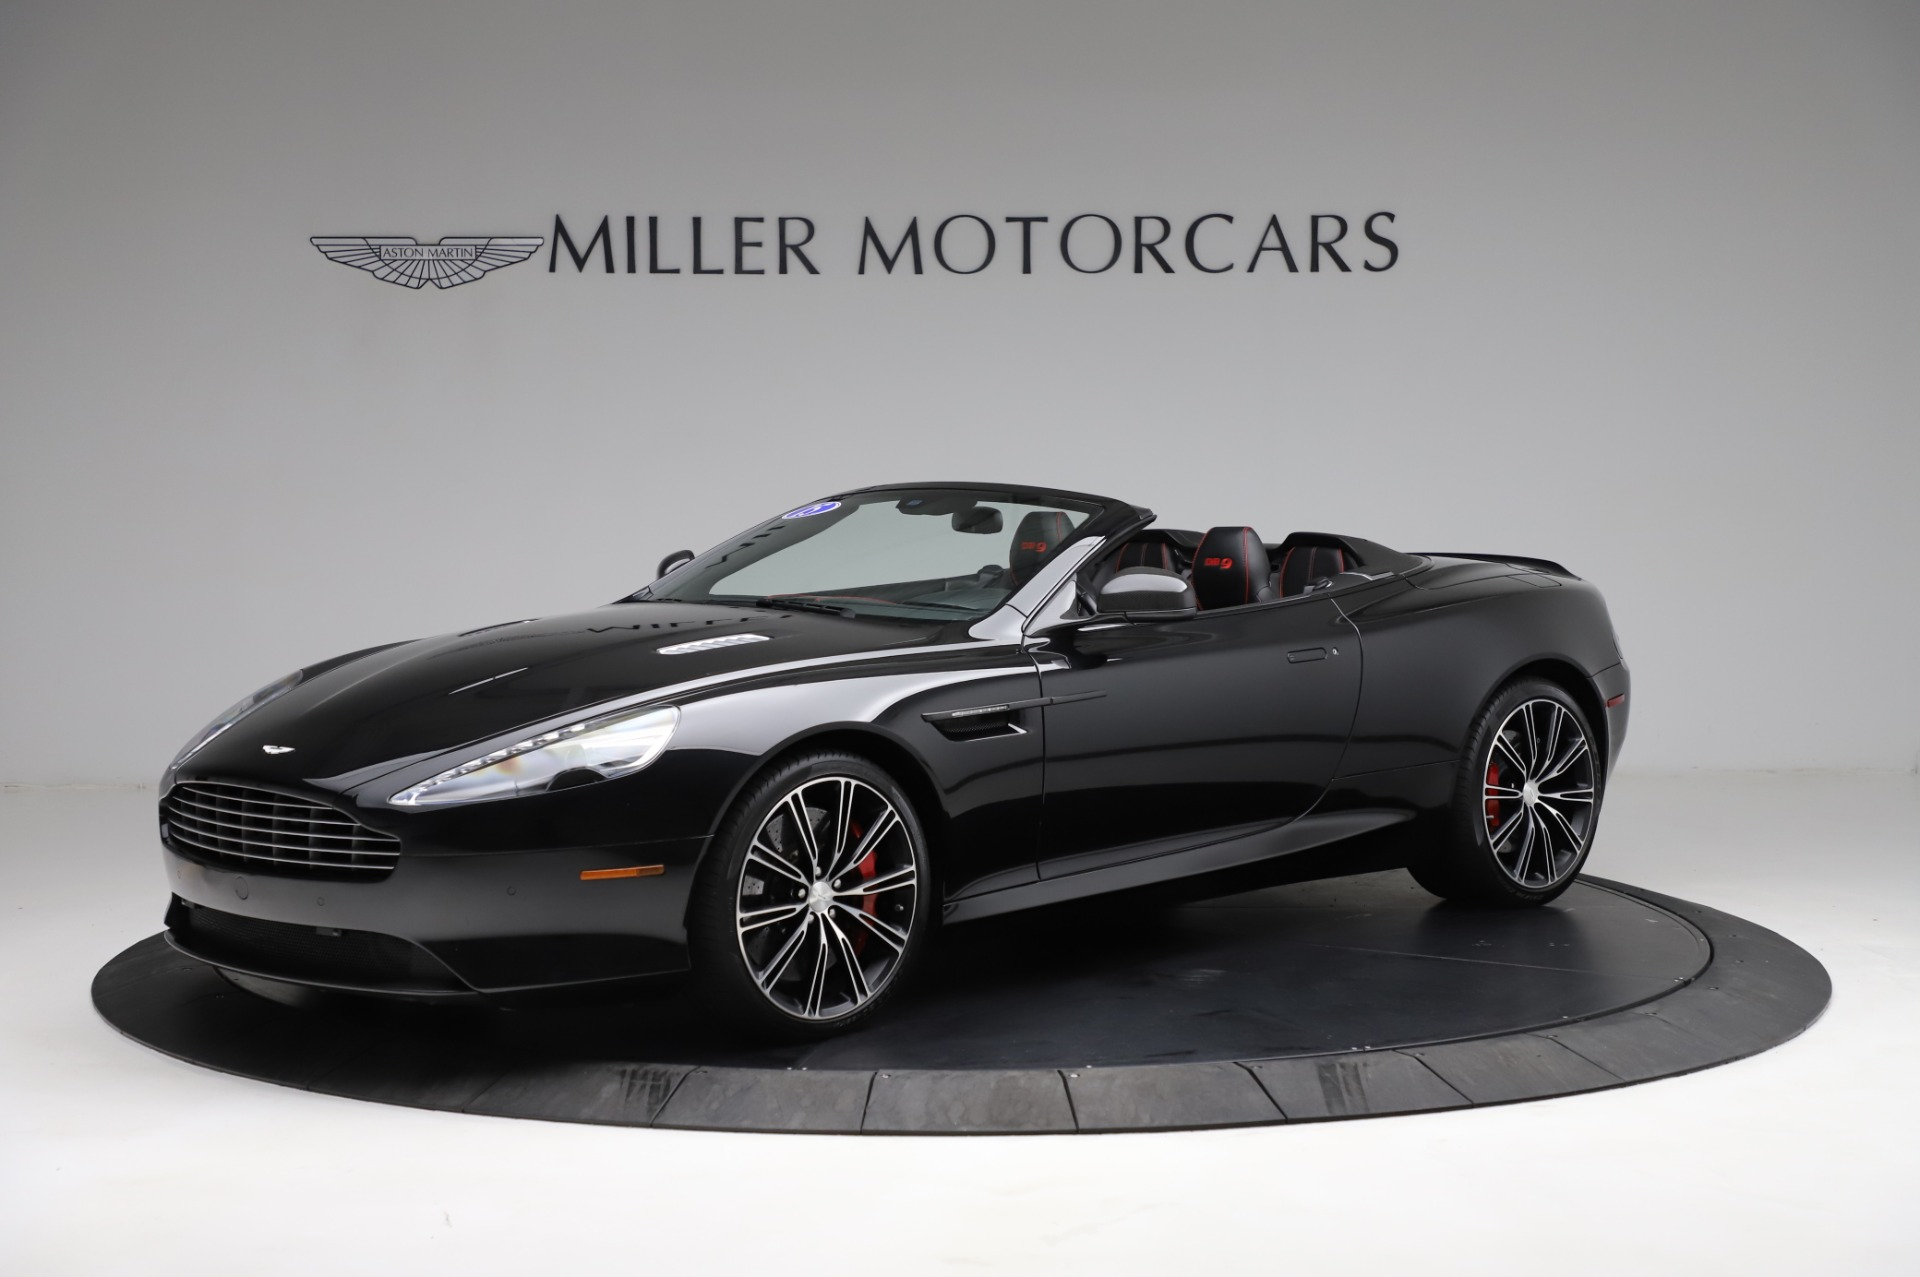 Used 2015 Aston Martin DB9 Convertible For Sale In Westport, CT